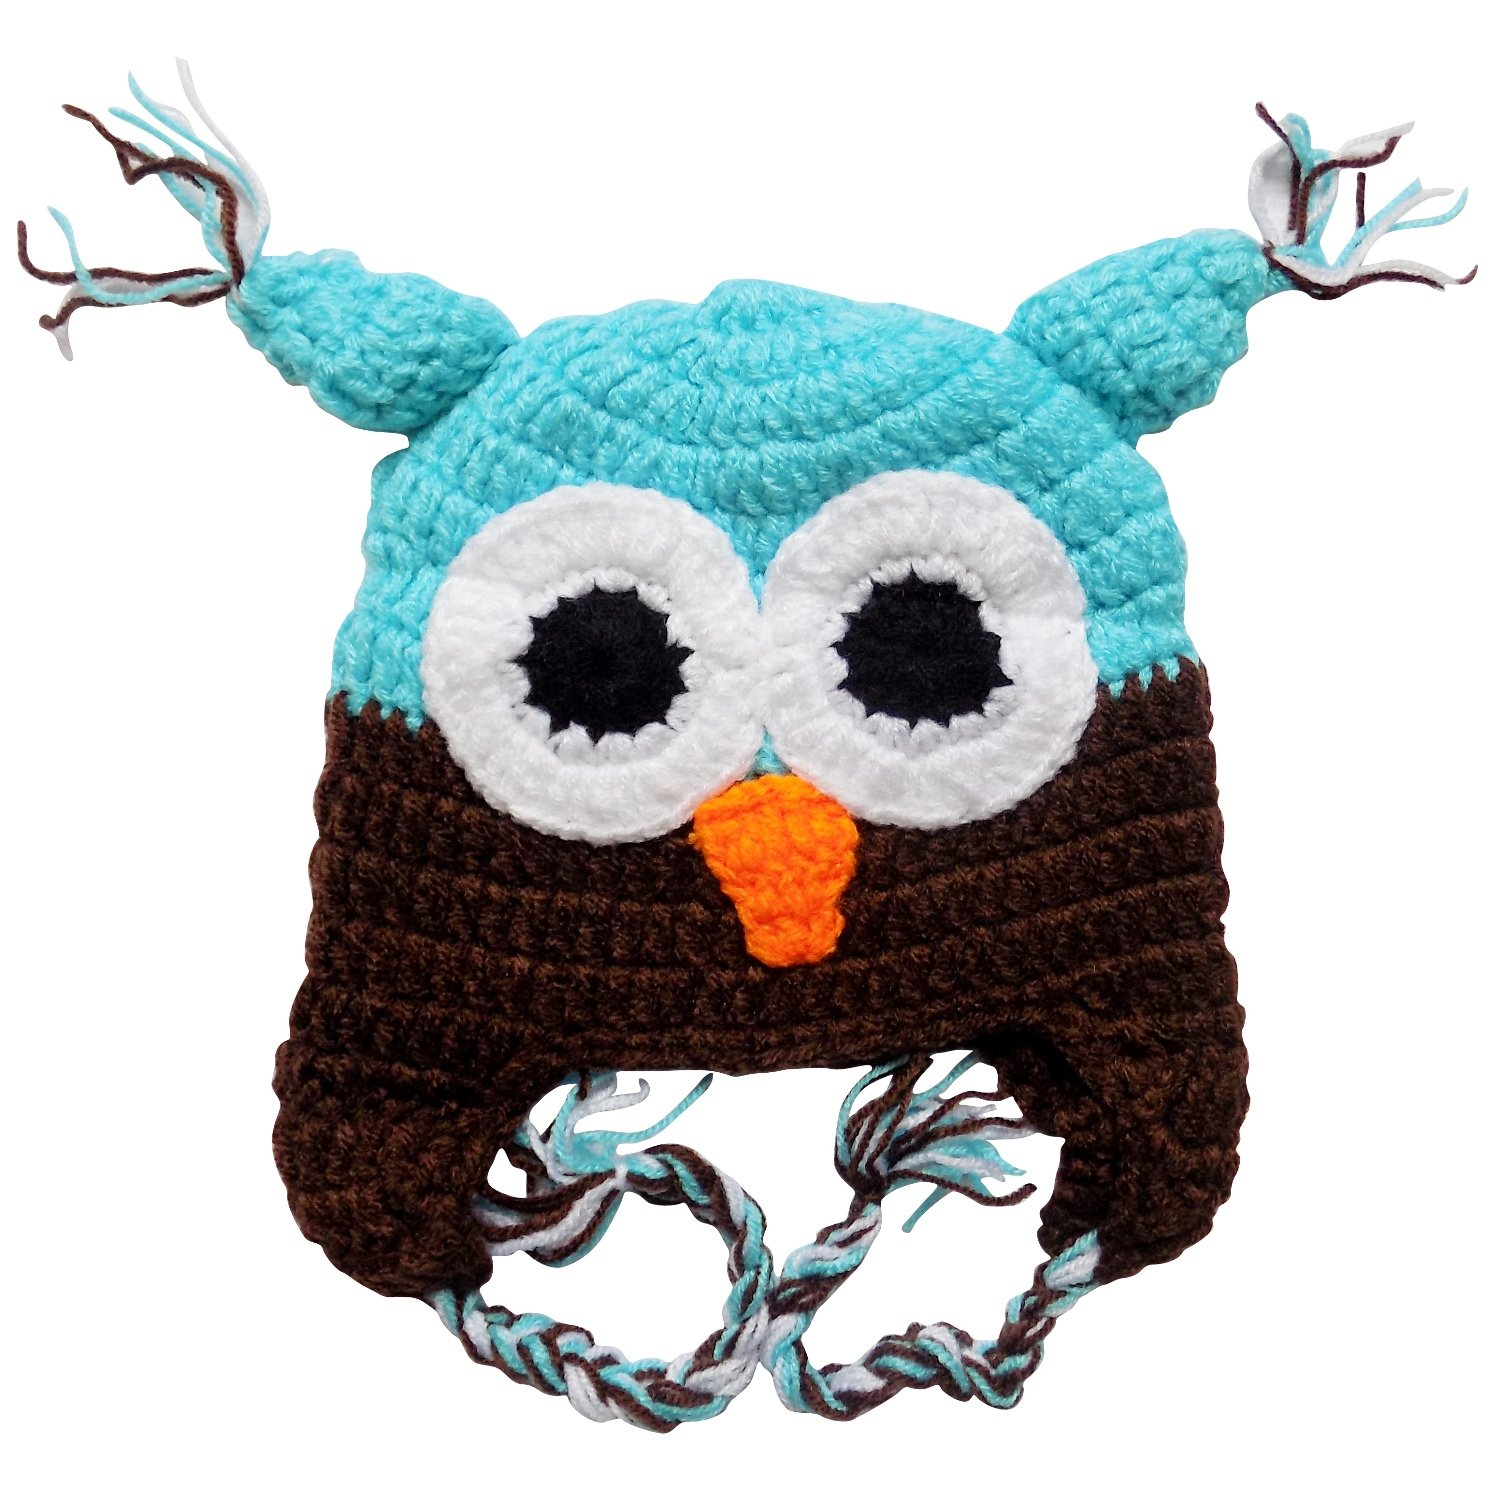 b3ad8167c55 Stretchy Crochet Animal Hat For Baby Toddler - One Size 3-18 MO 2T (Cow) at  Amazon Men s Clothing store